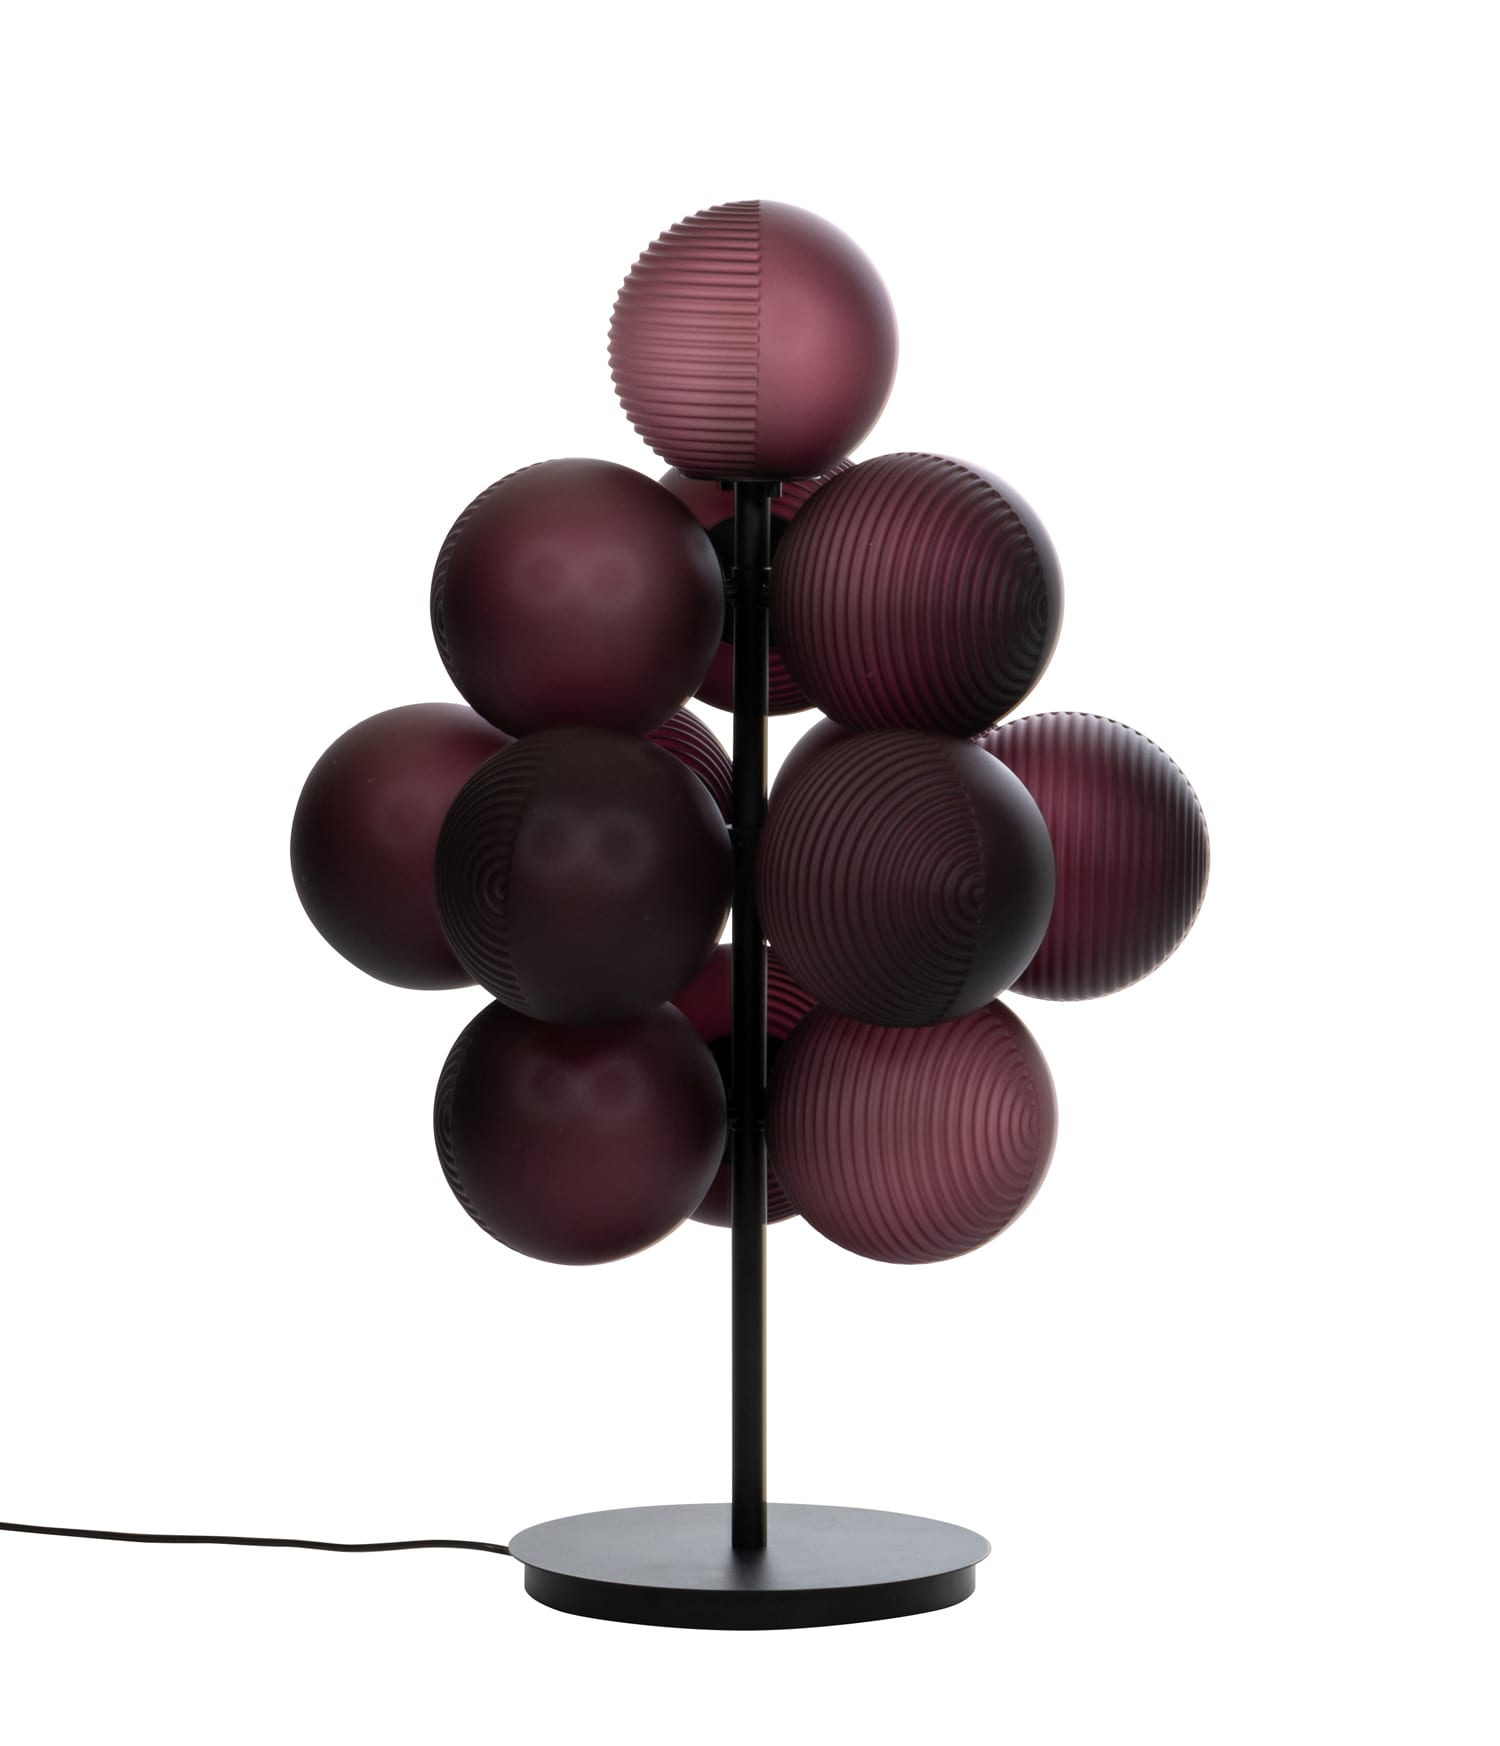 Stellar Grape lamp by Sebastian Herkner for Pulpo at Maison & Objet 2019 | Yellowtrace